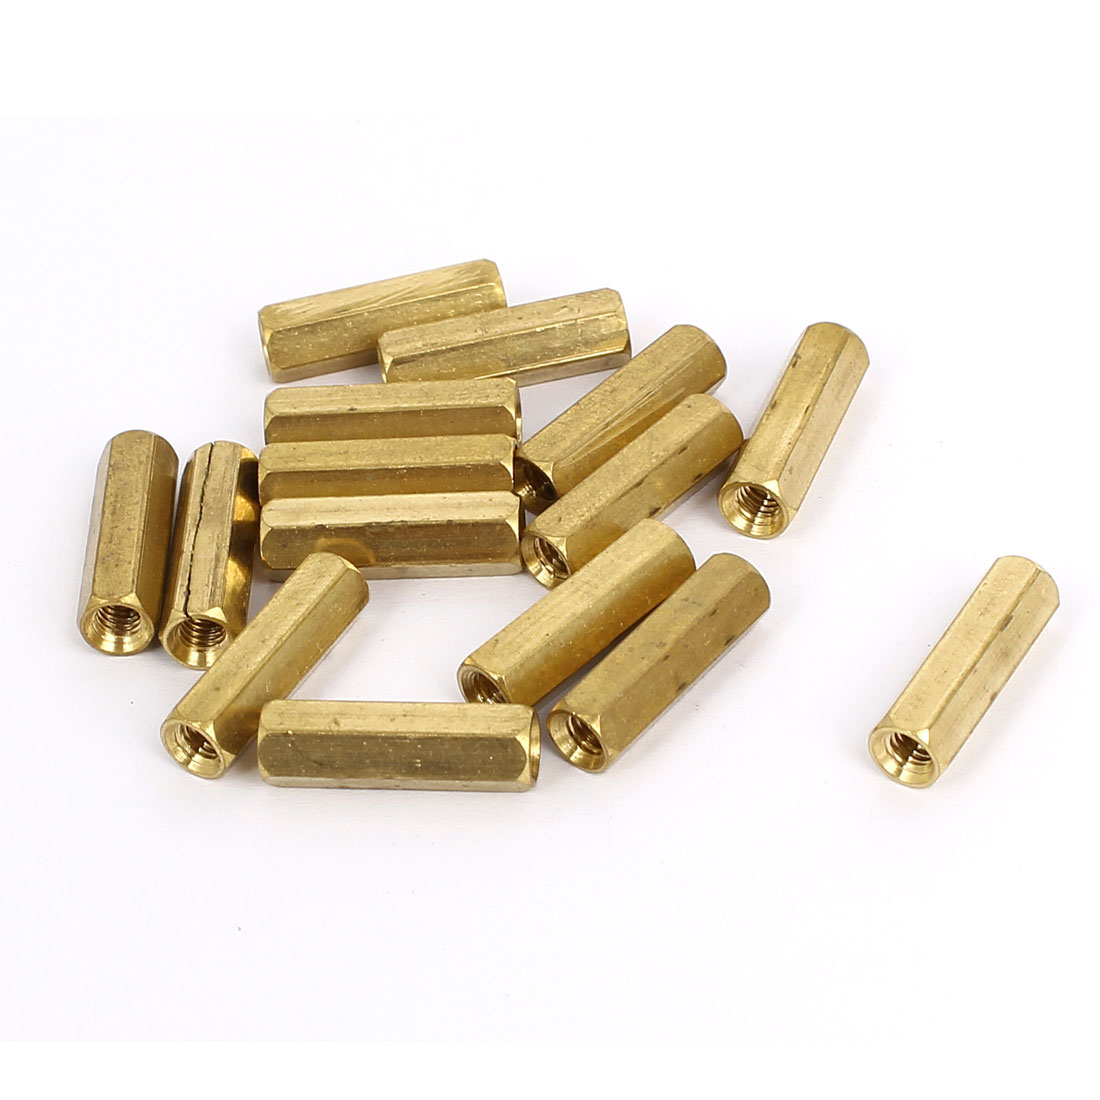 M4x20mm Brass Hex Hexagonal Female Thread PCB Standoff Spacer 15pcs